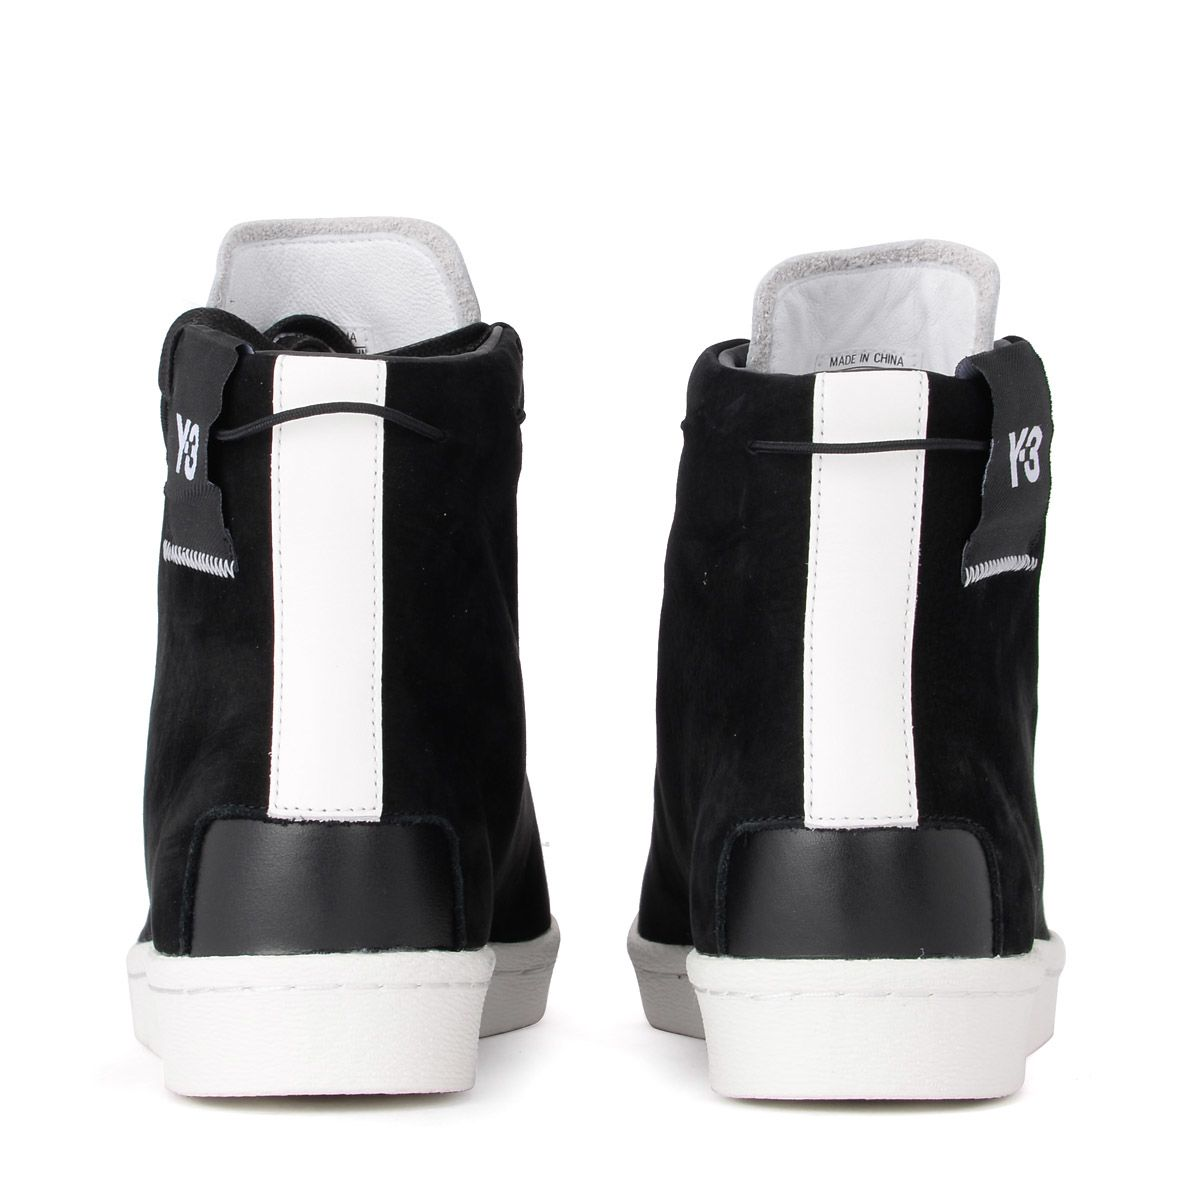 e094e1b6aff9 ... Y-3 Super High Black Suede And White Leather High Top Sneaker -  Multicolor ...